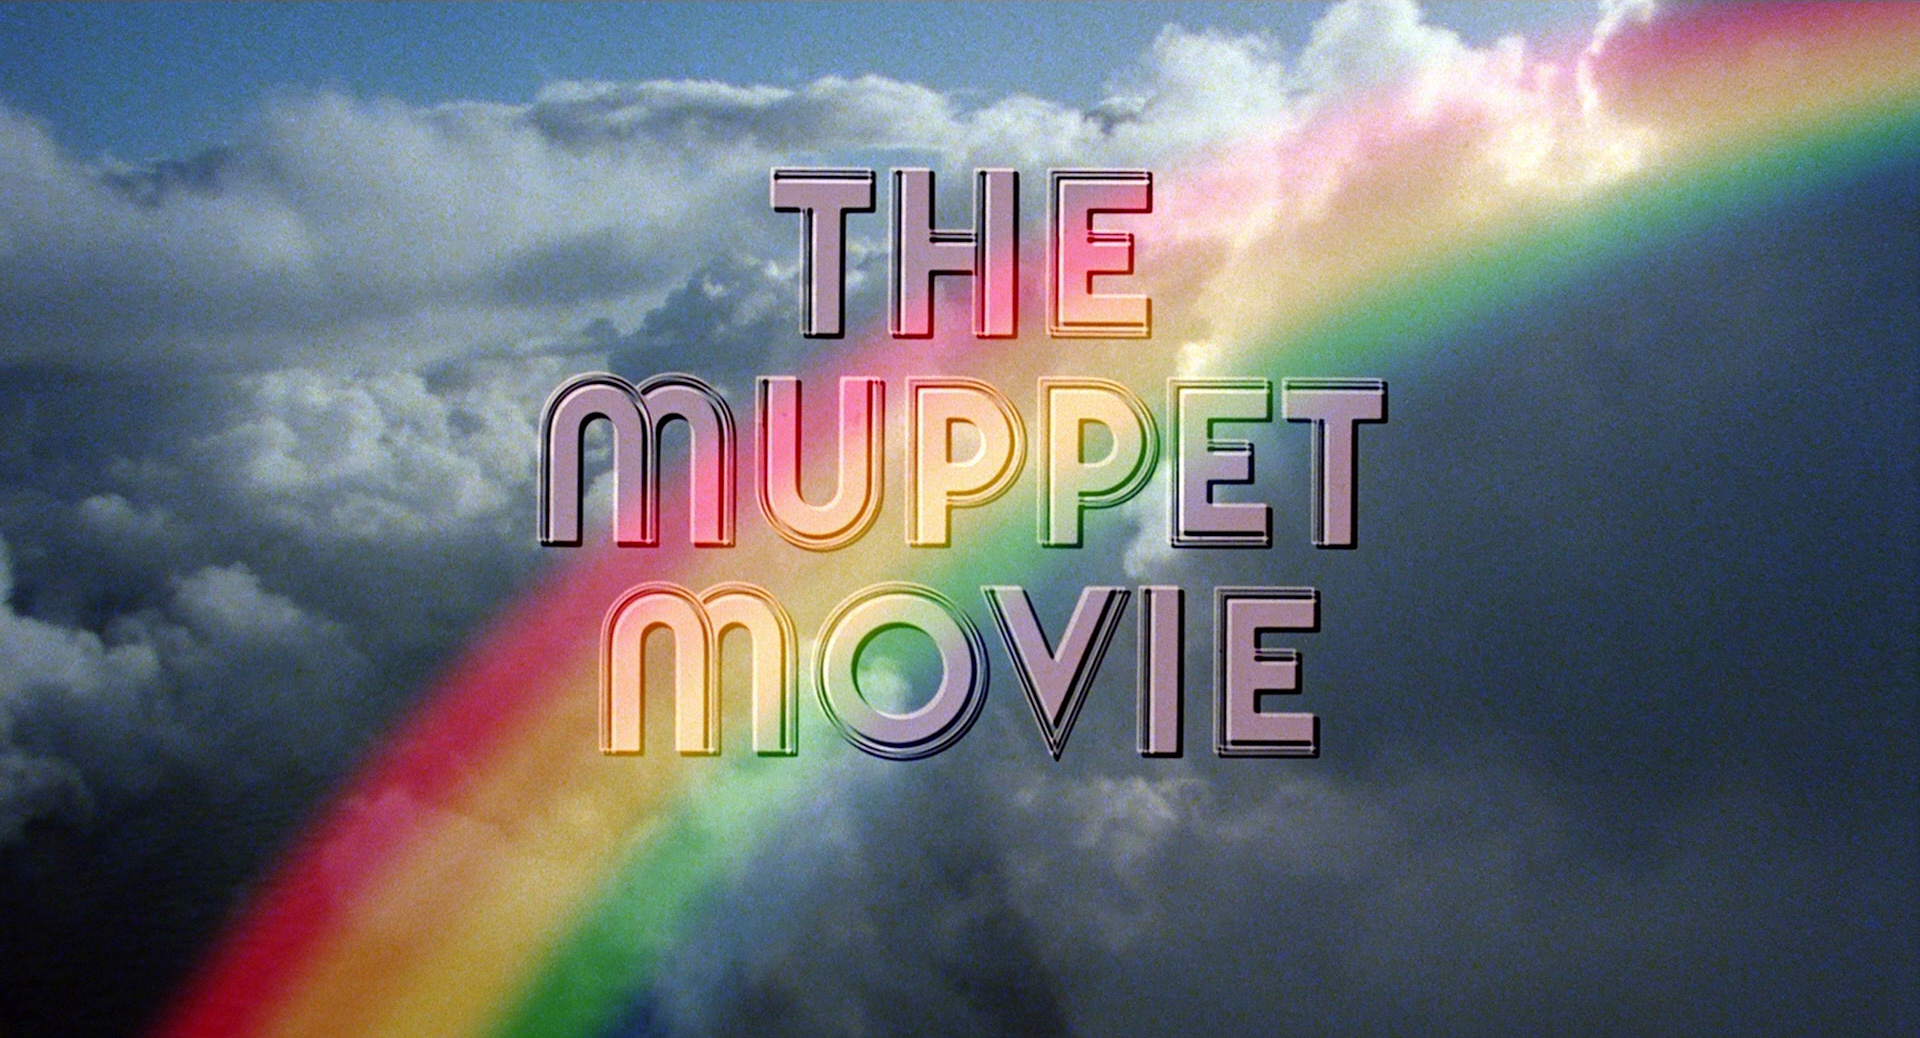 Meanwhile Movie: The Muppet Movie > WT